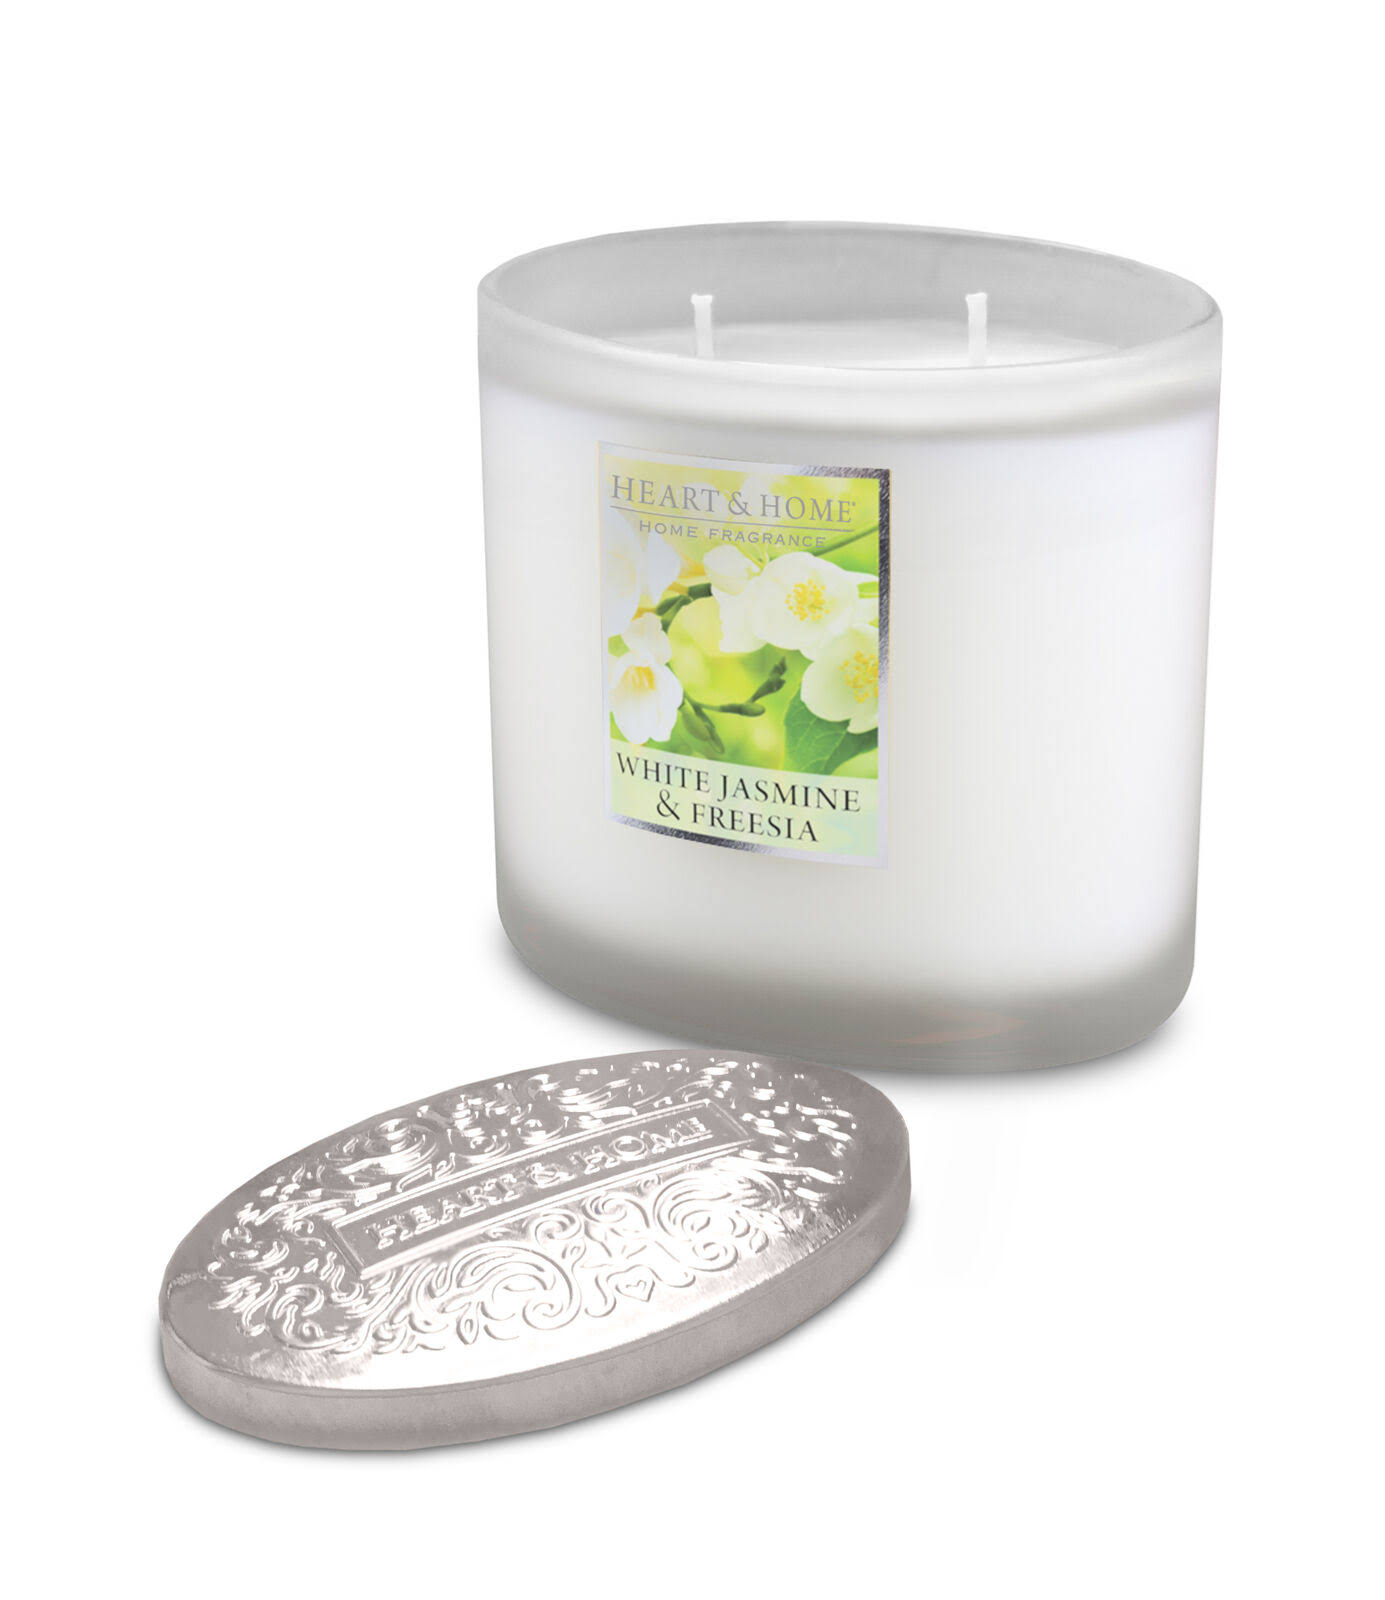 Heart & Home 2 Wick Ellipse Candle - White Jasmine and Freesia